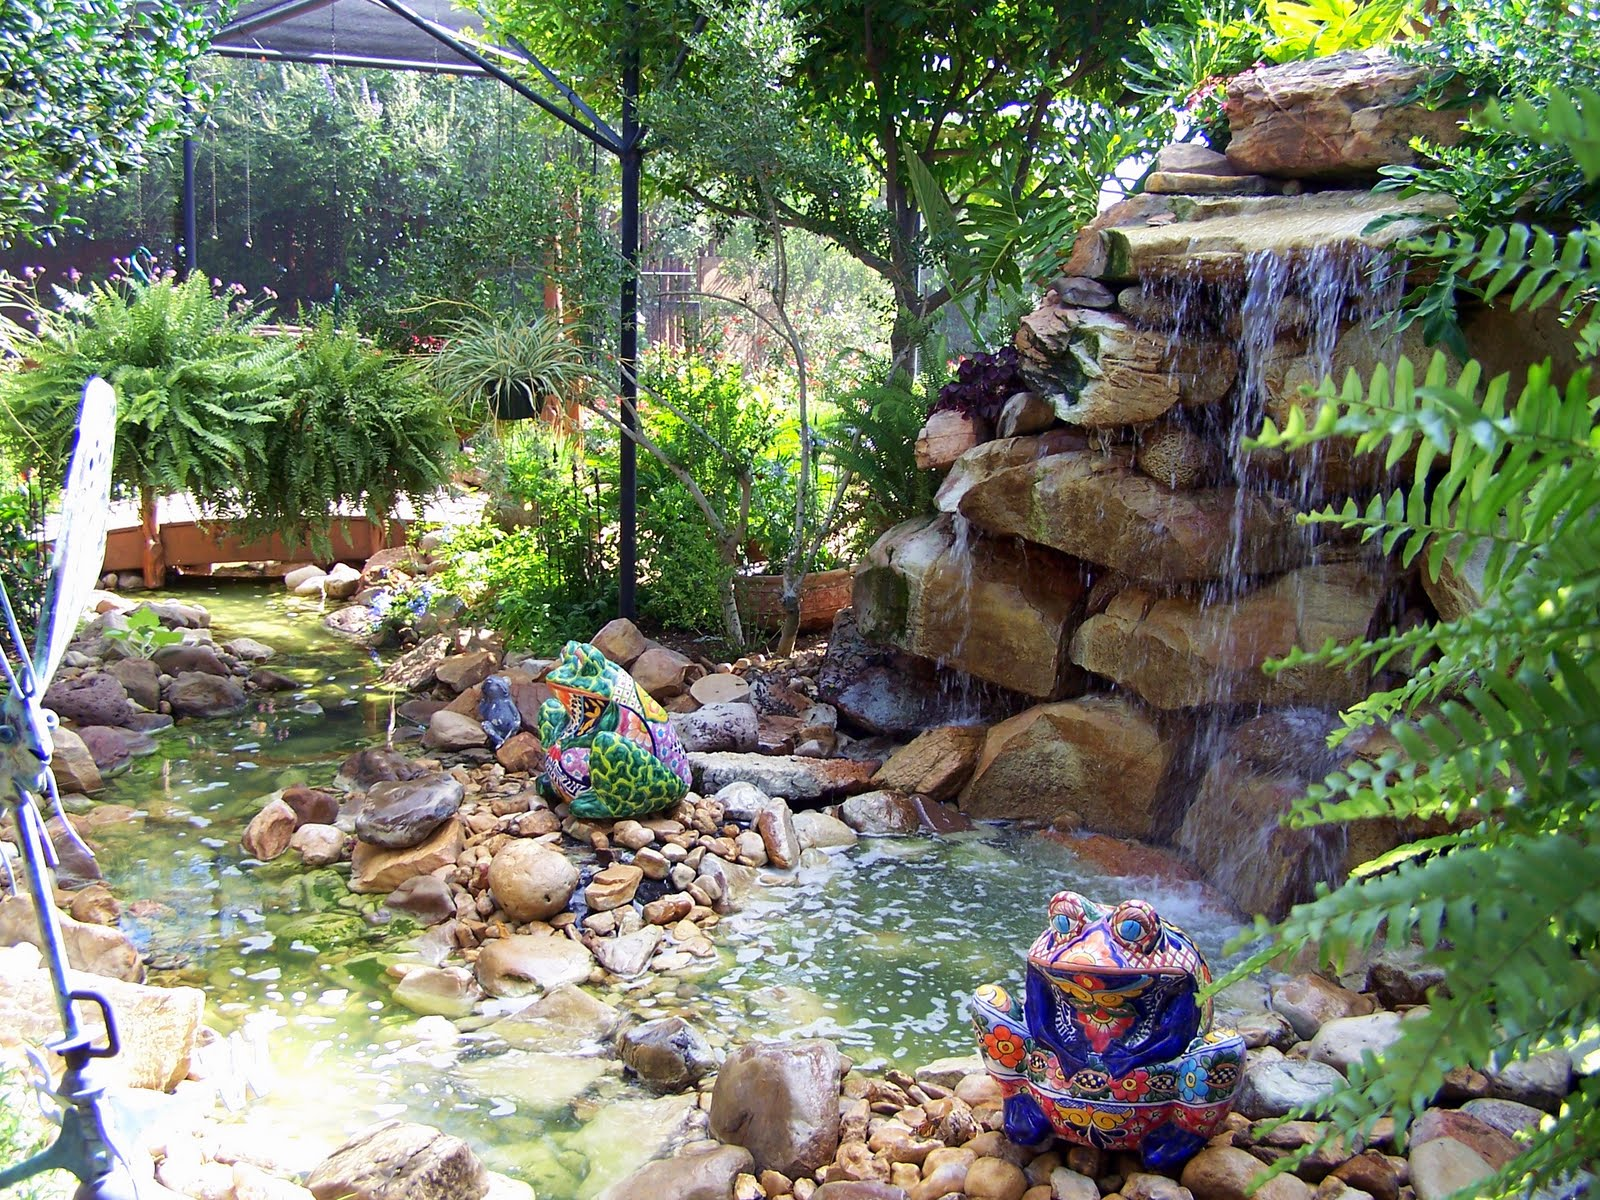 Texasdaisey creations water gardens for The water garden